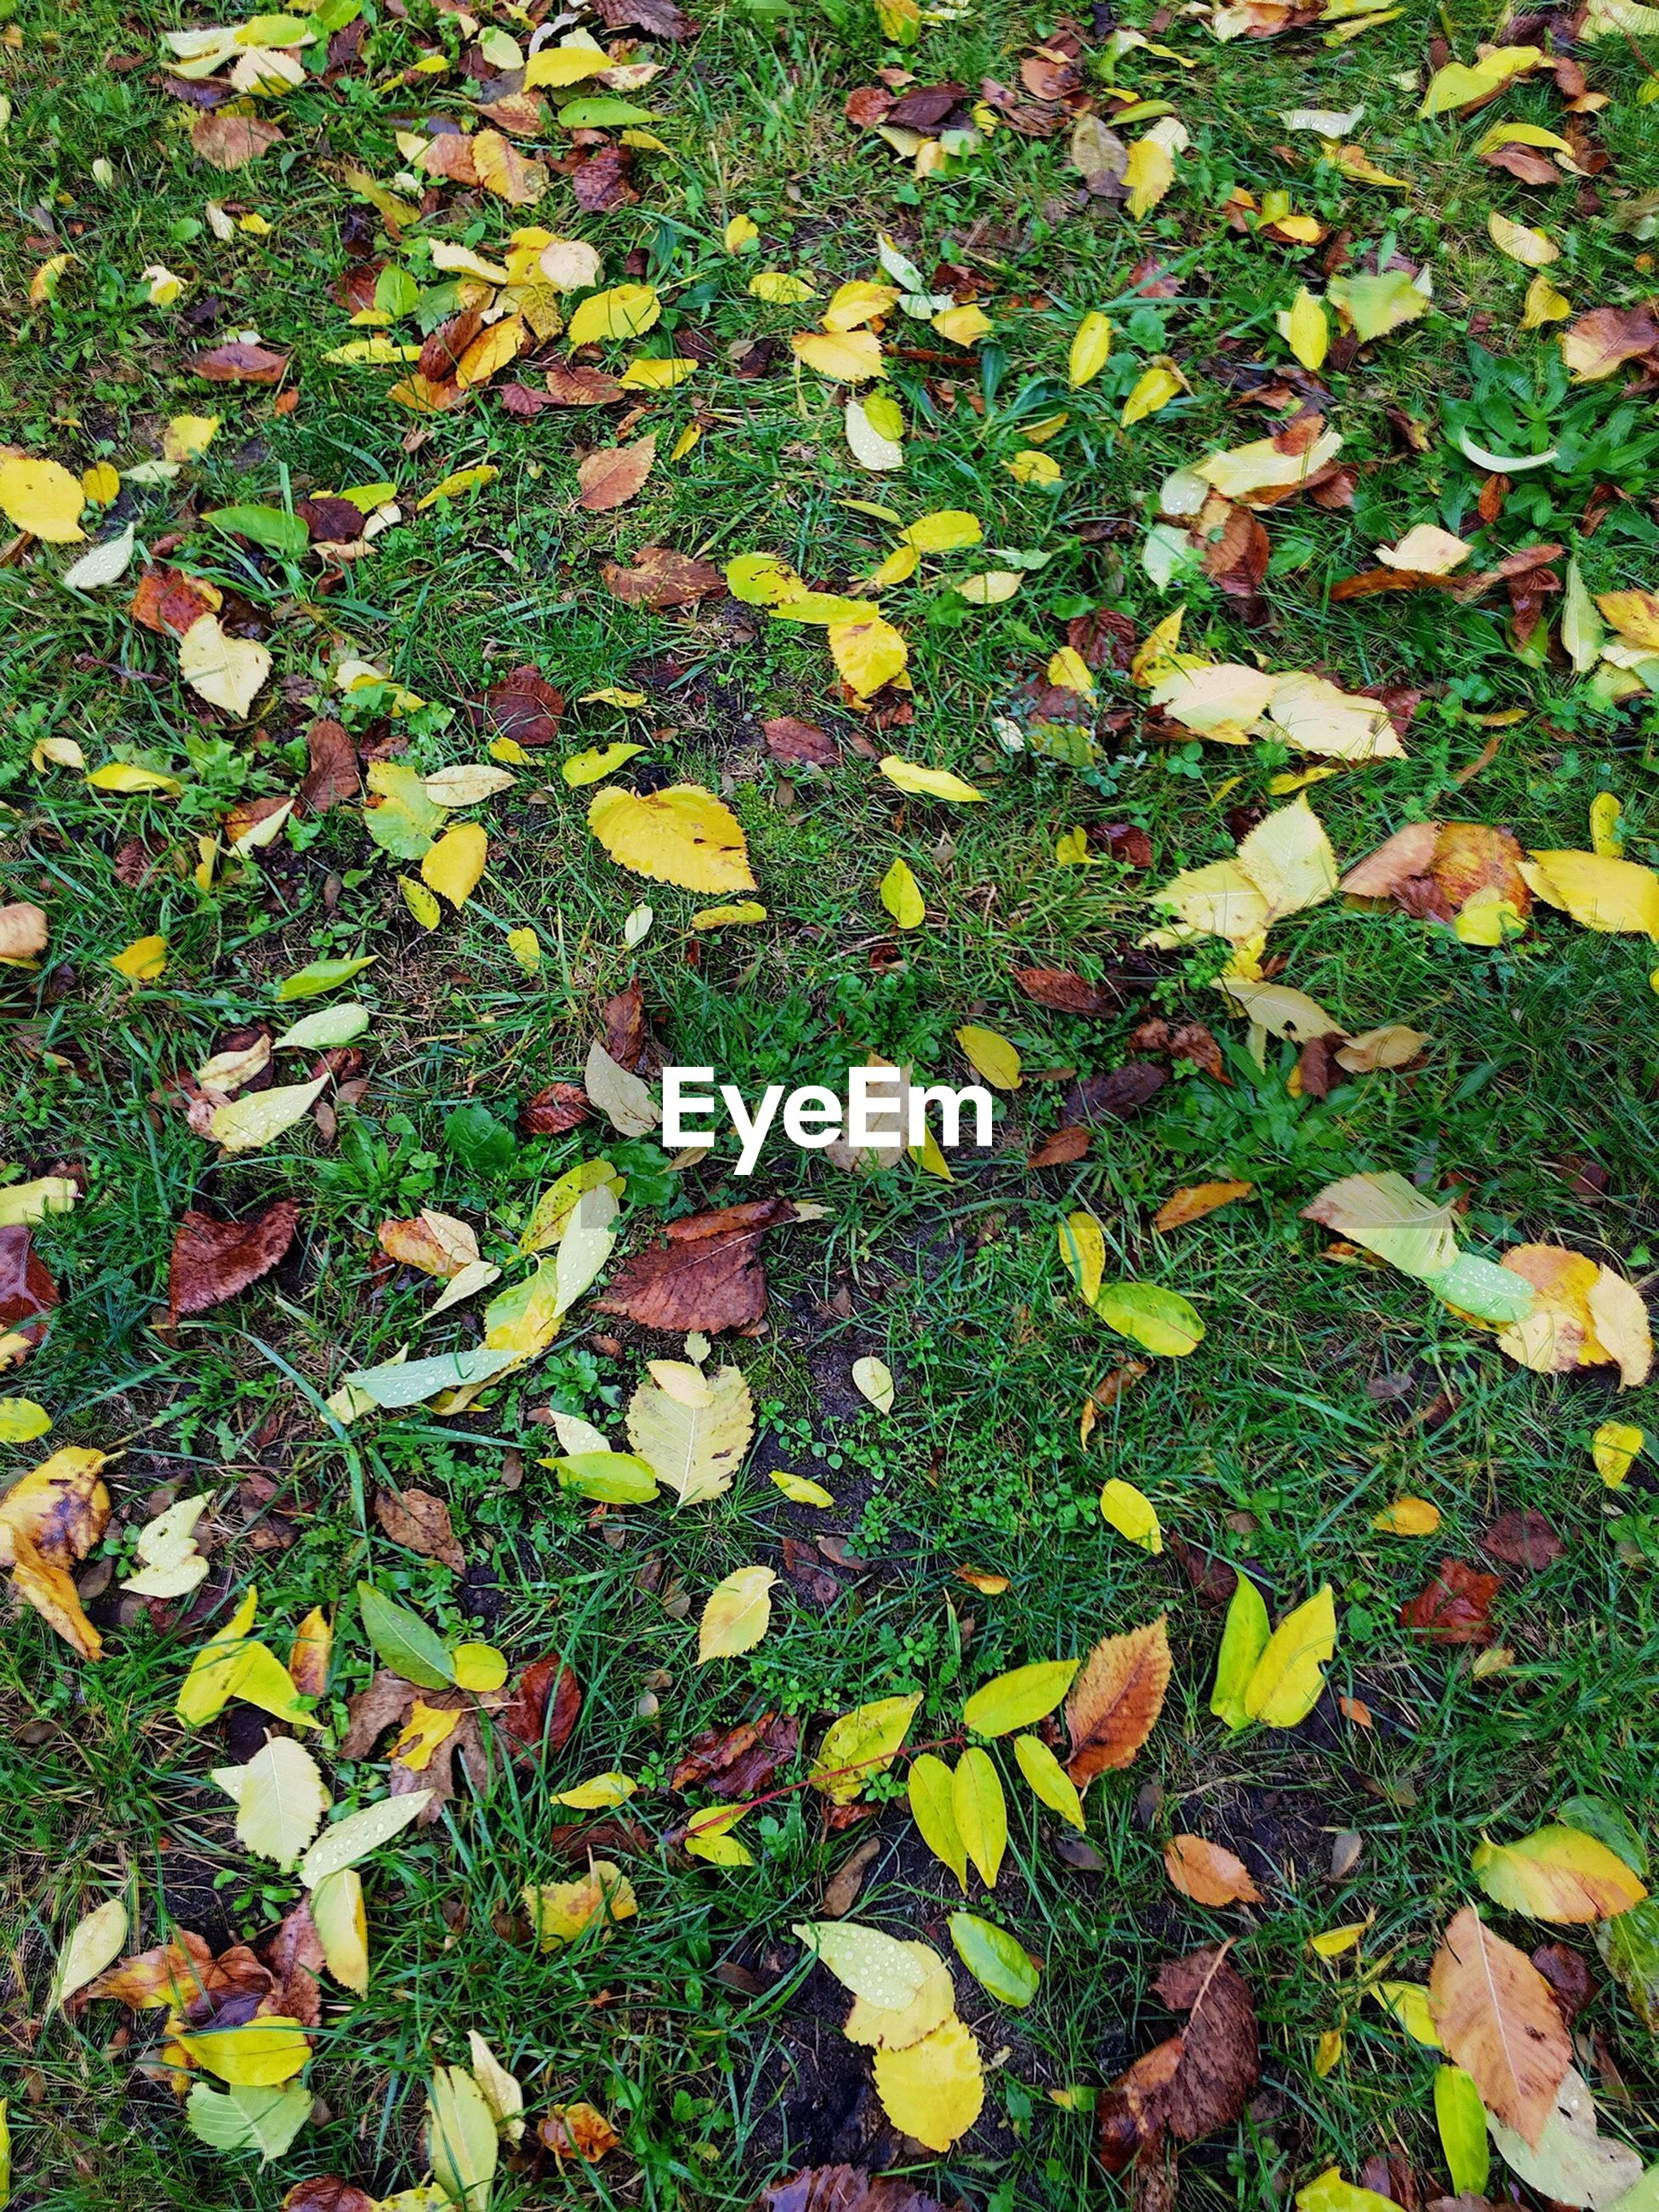 leaf, season, autumn, change, high angle view, grass, leaves, fallen, tranquility, falling, dry, nature, field, full frame, day, fragility, green color, grassy, maple leaf, growth, outdoors, beauty in nature, group of objects, abundance, large group of objects, natural condition, tranquil scene, botany